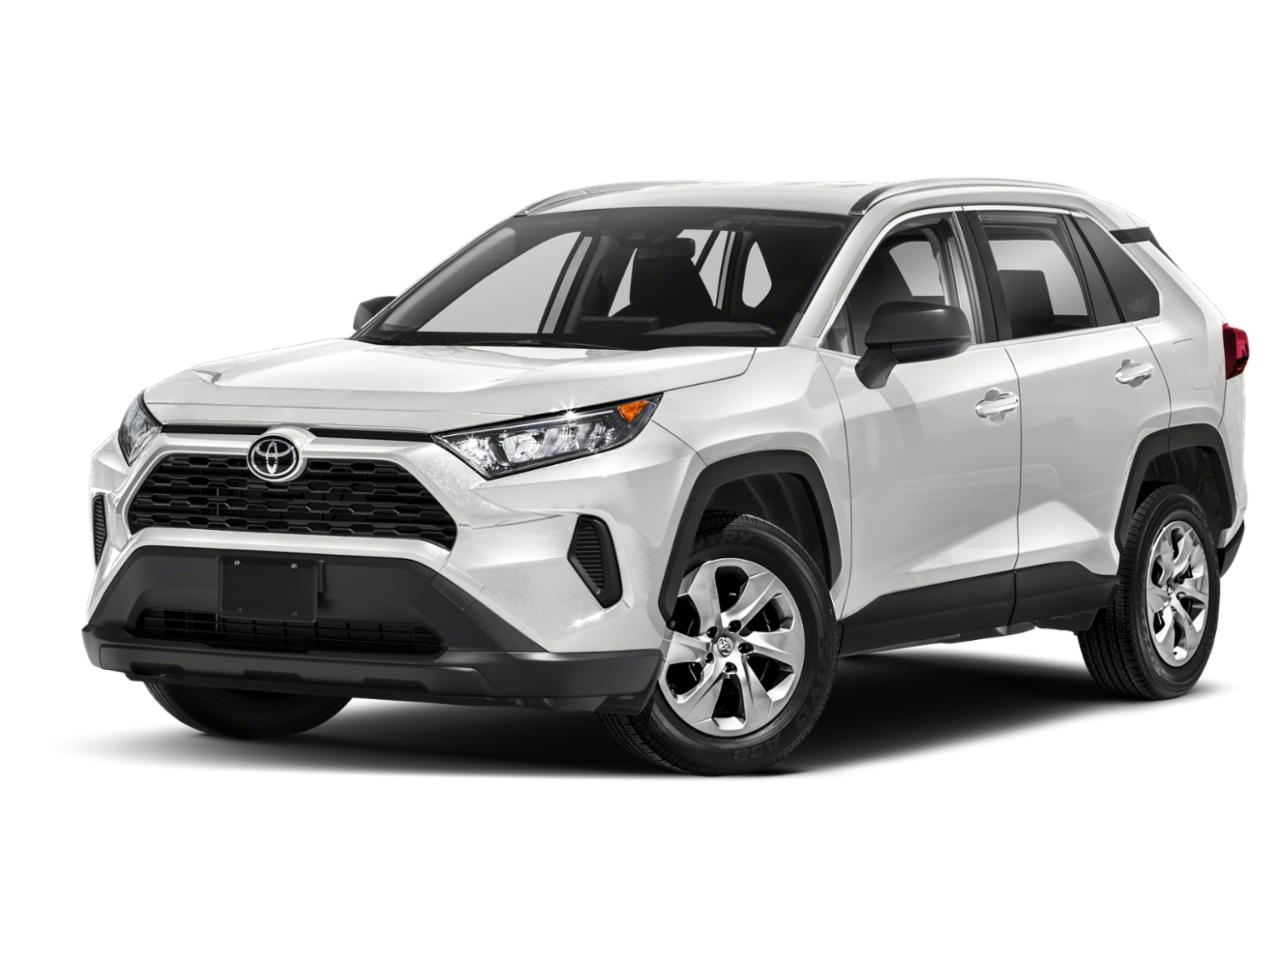 2019 Toyota RAV4 Vehicle Photo in Trevose, PA 19053-4984